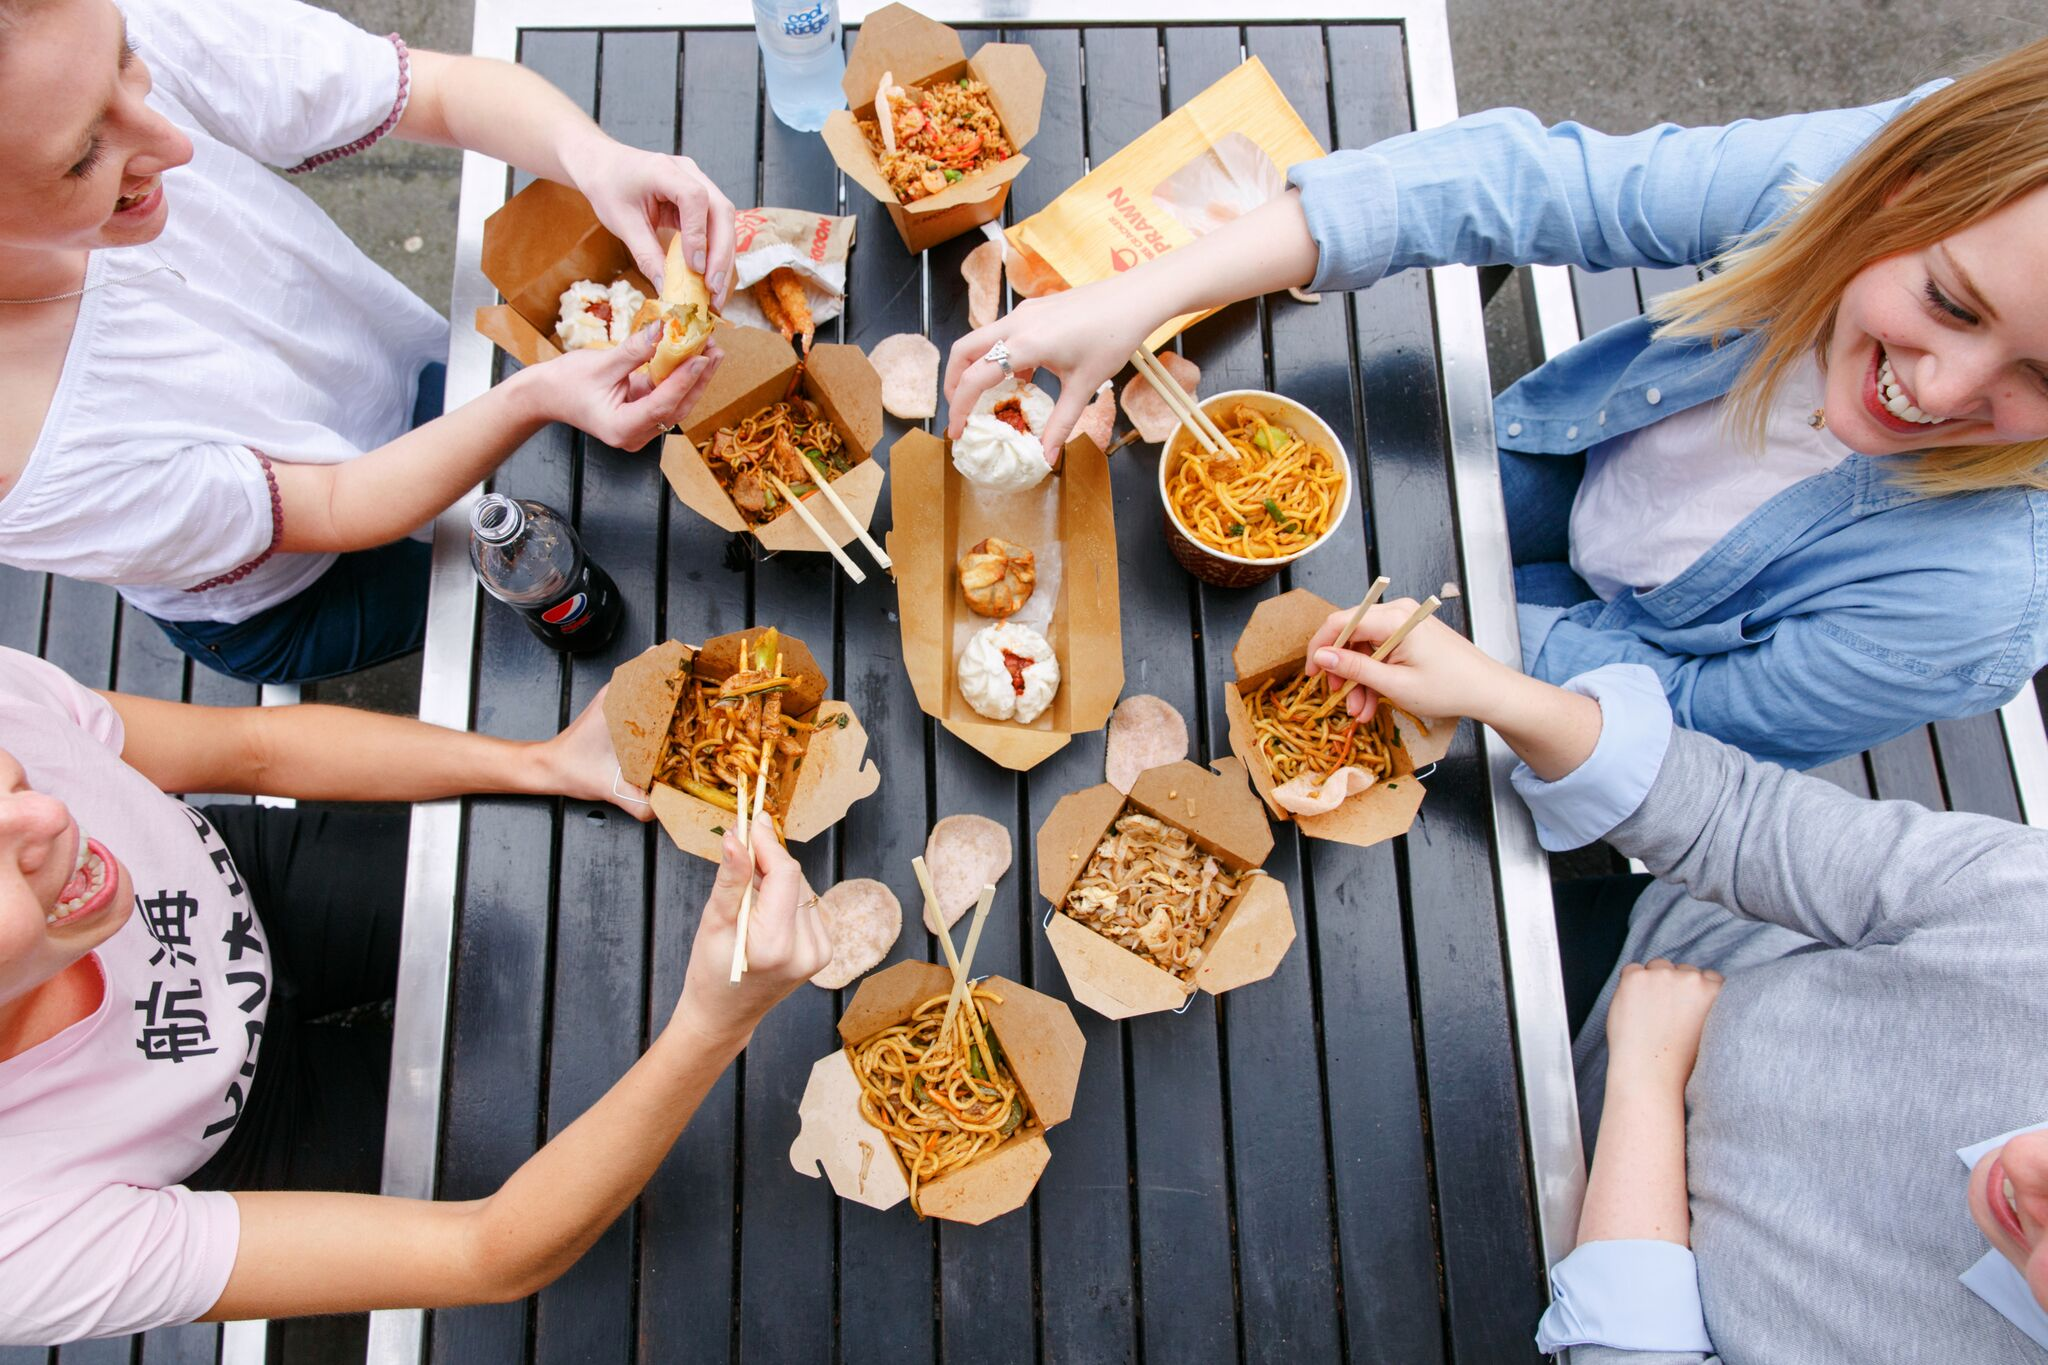 NOODLE BOX WANTS TO BE PART OF REGIONAL QUEENSLAND